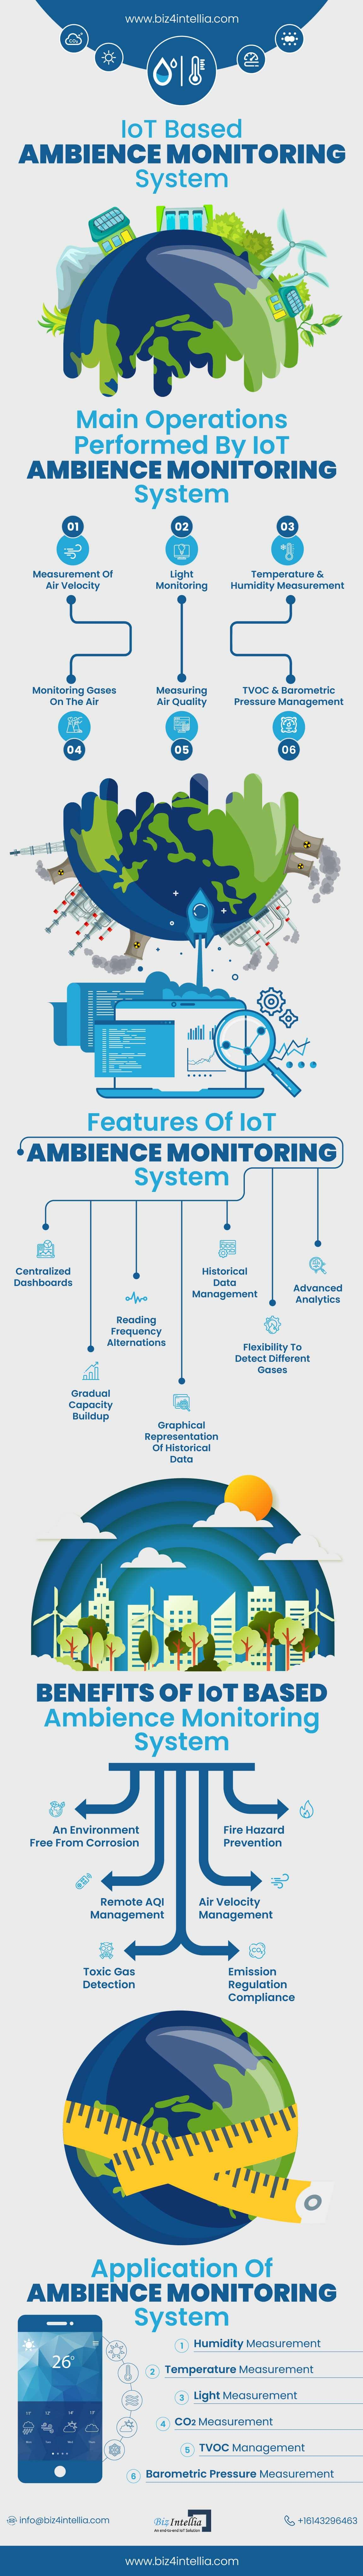 iot-based-ambience-monitoring-system